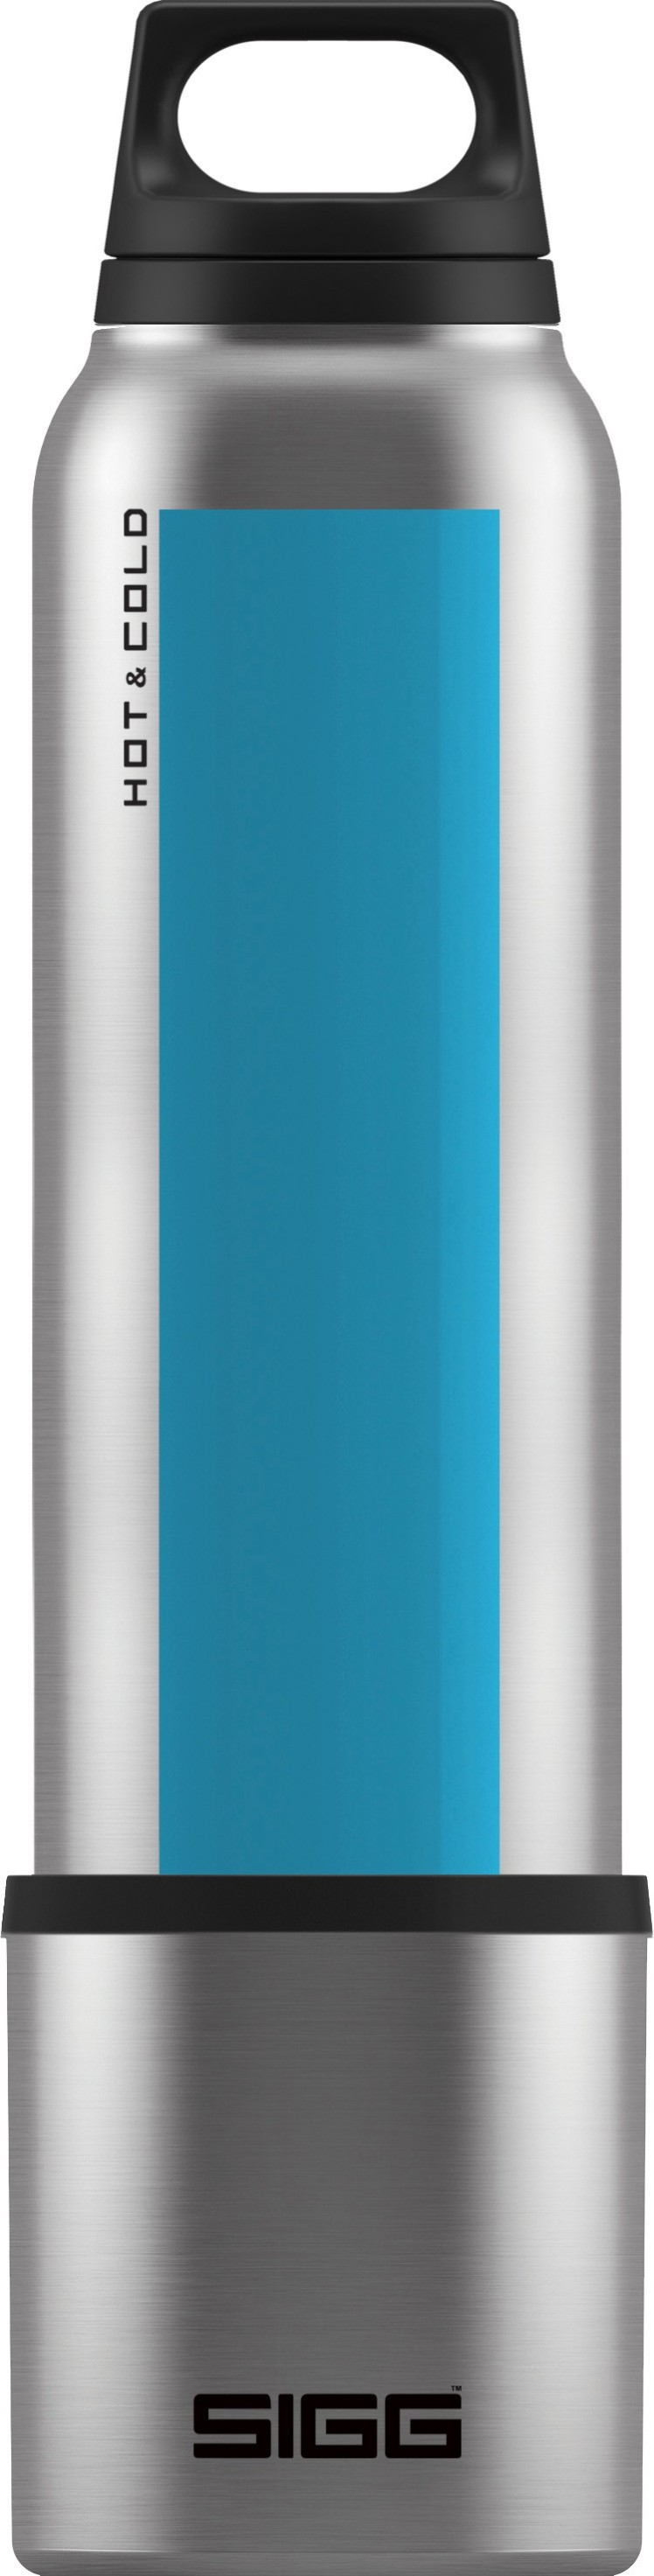 1-0l_8583-80_sigg_hot_cold_accent_aqua_1